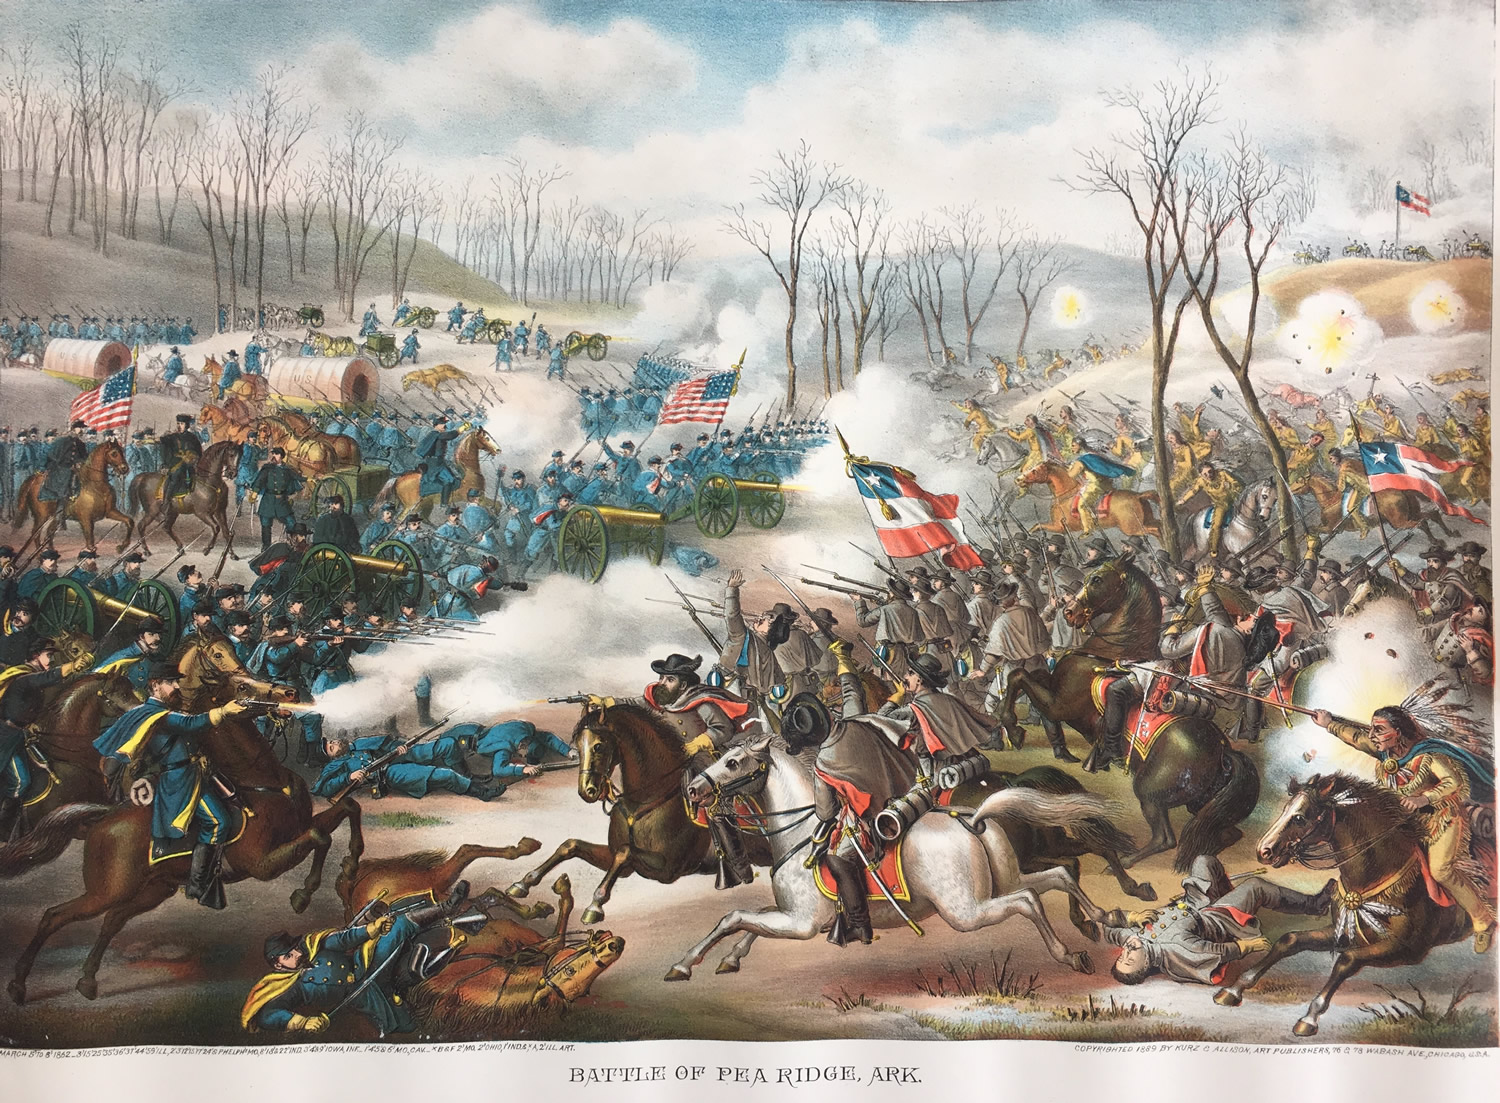 Battle of Pea Ridge, Arkansas by Kurz and Allison, late 1800s, Collection of Eric Stoltz